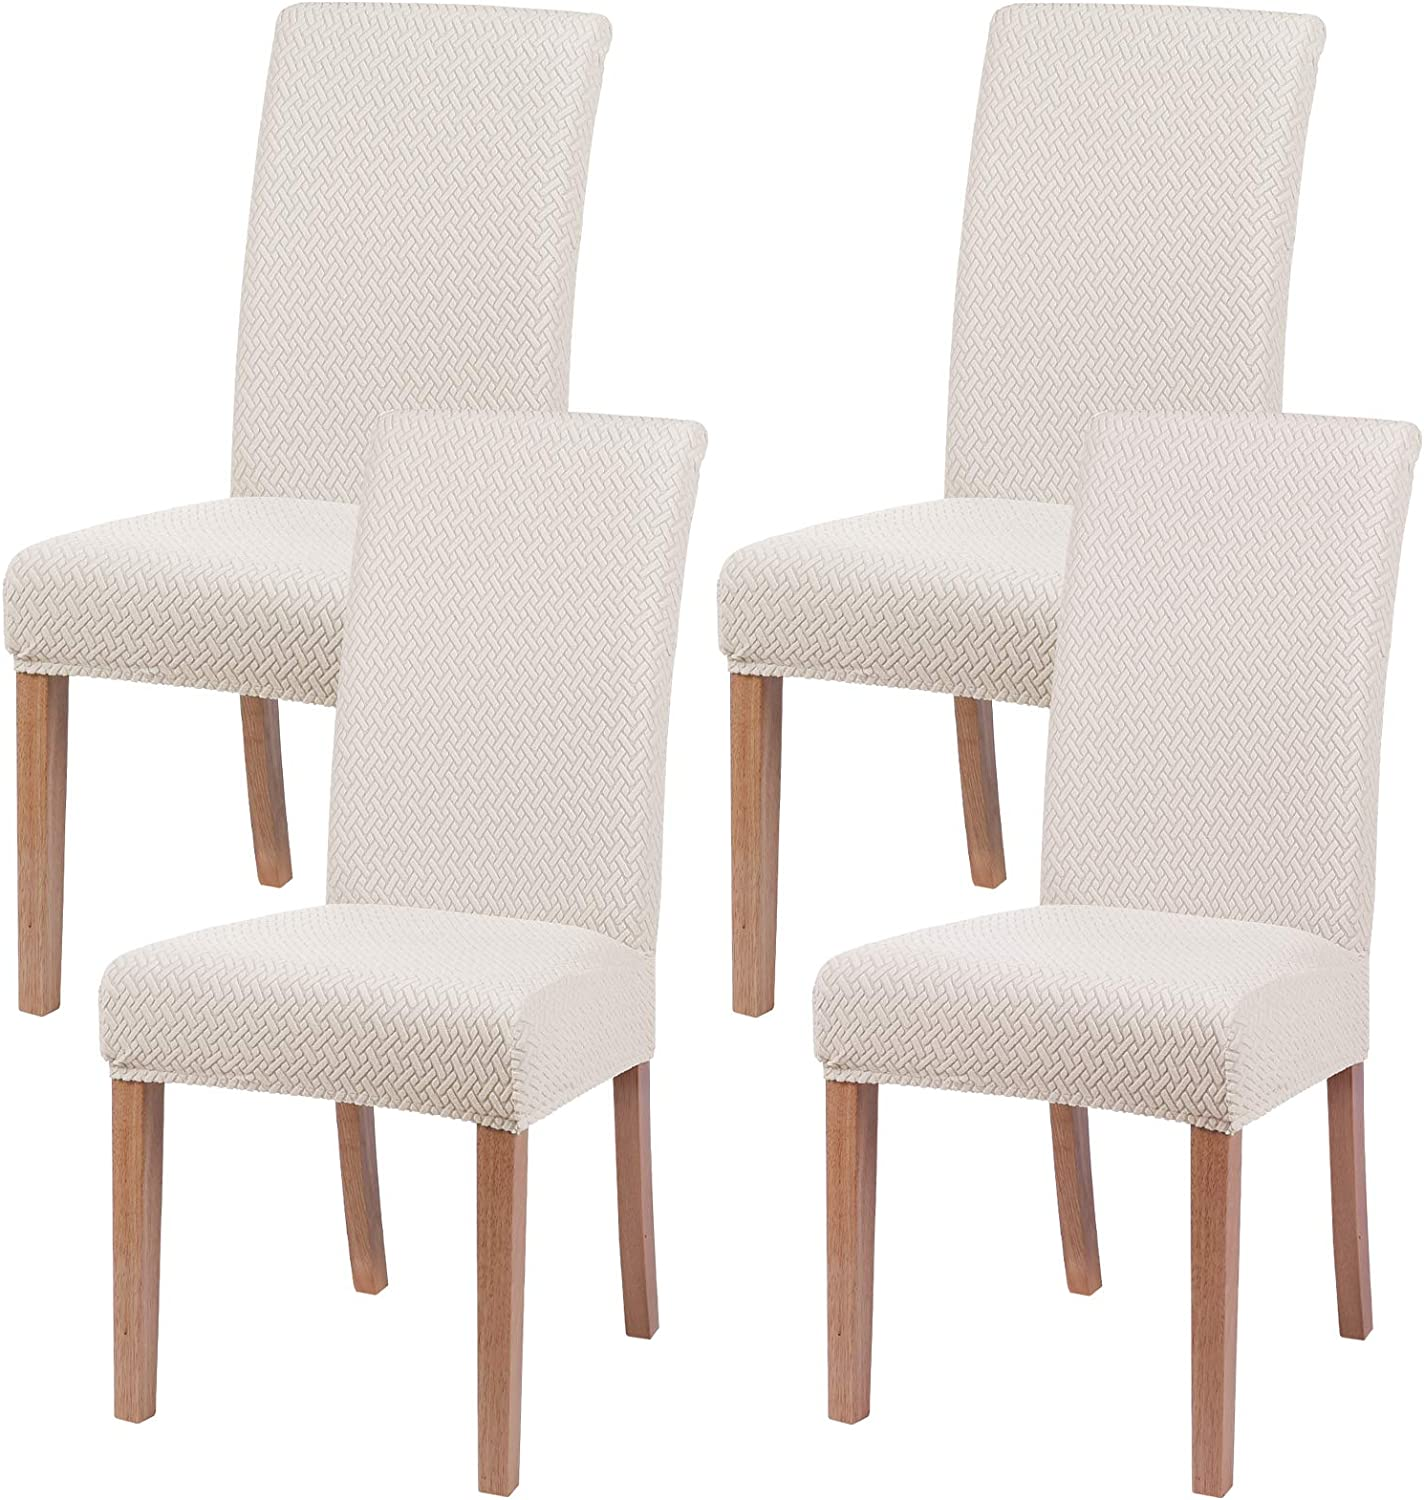 smiry/Stretch/Dining/Room/Chair/Covers/Soft/Removable/Dining/Chair/Slipcovers/Set/of/2,/Beige